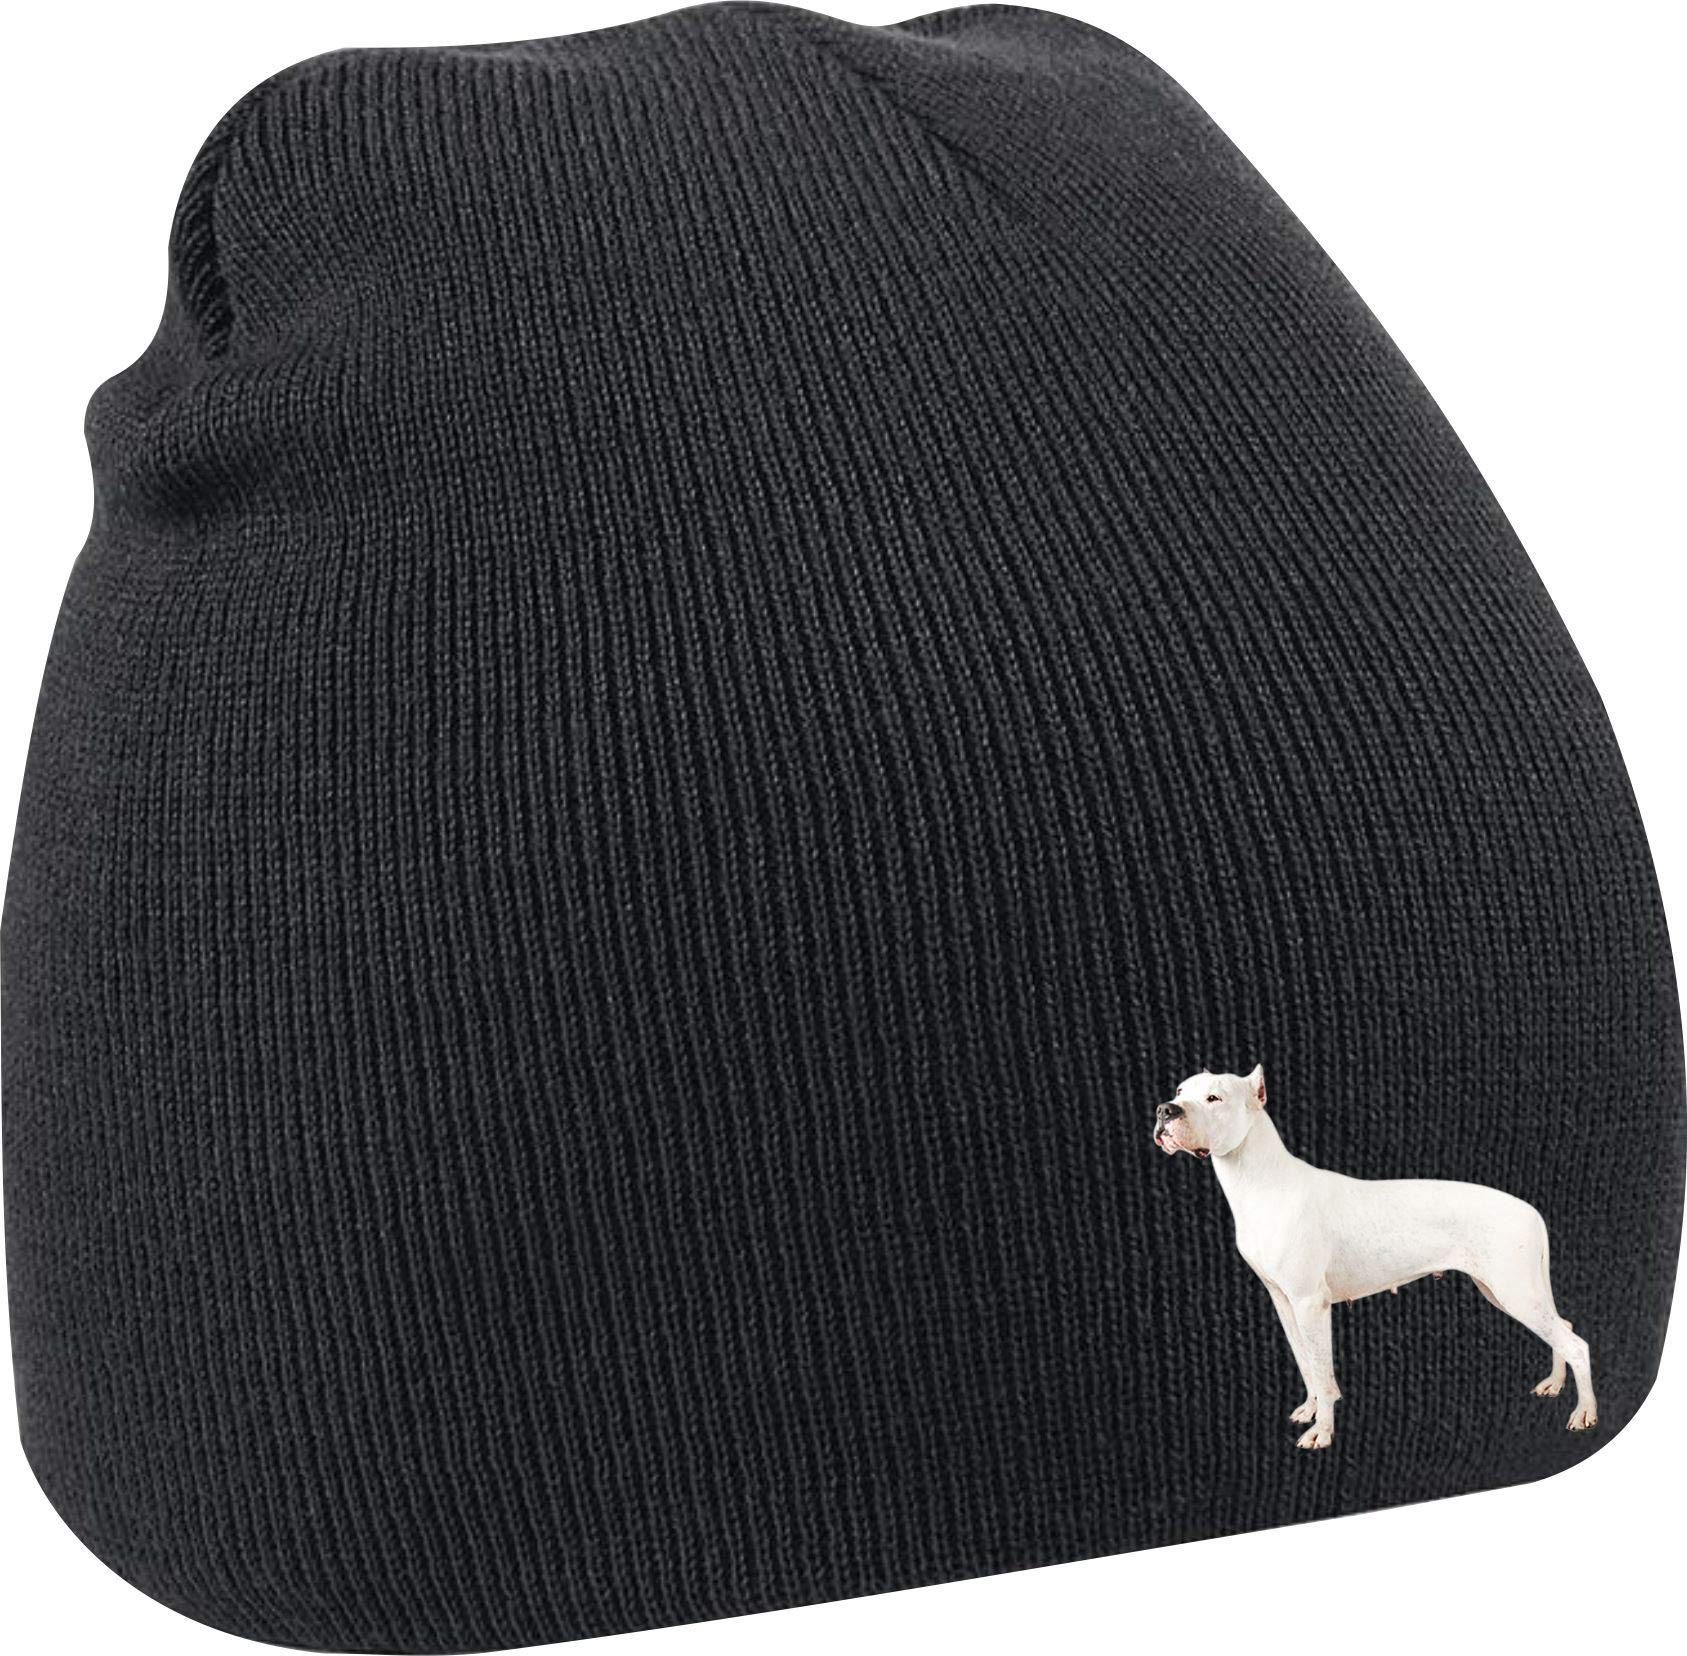 Taurus Clothing Doberman Pinscher Dog Personalised Embroidered Cap Black